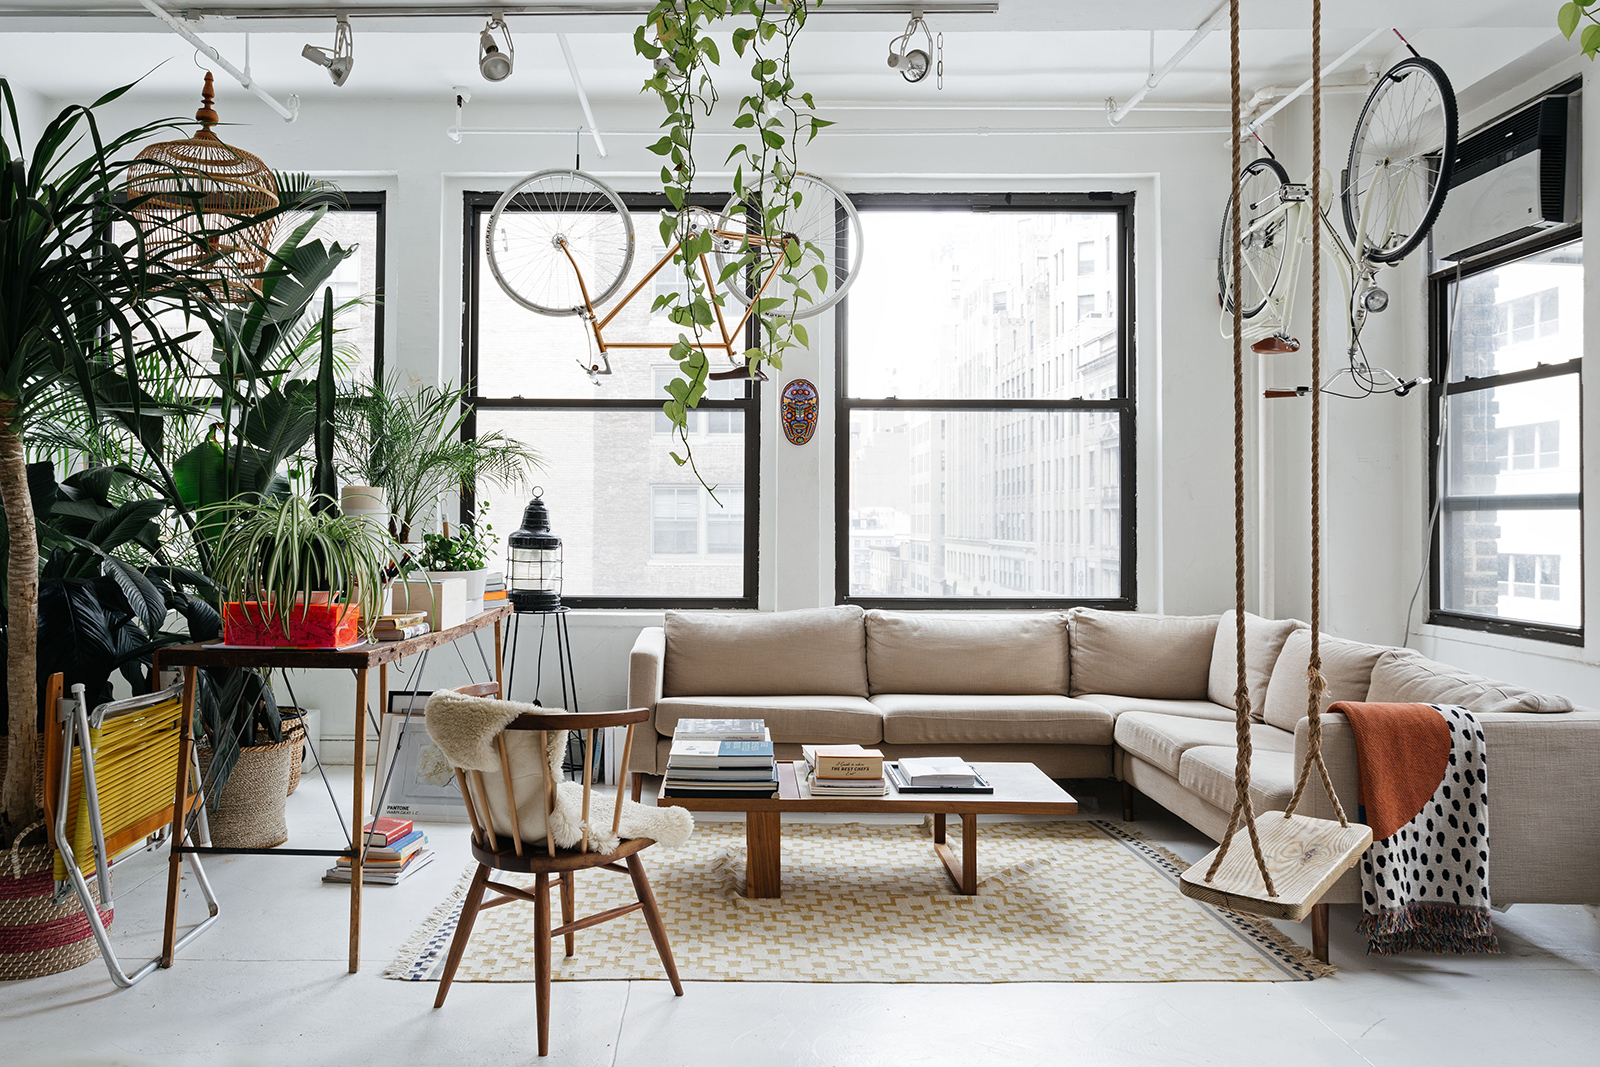 13 Stunning Apartments In New York: 6 Of The Best New York Apartments To Rent